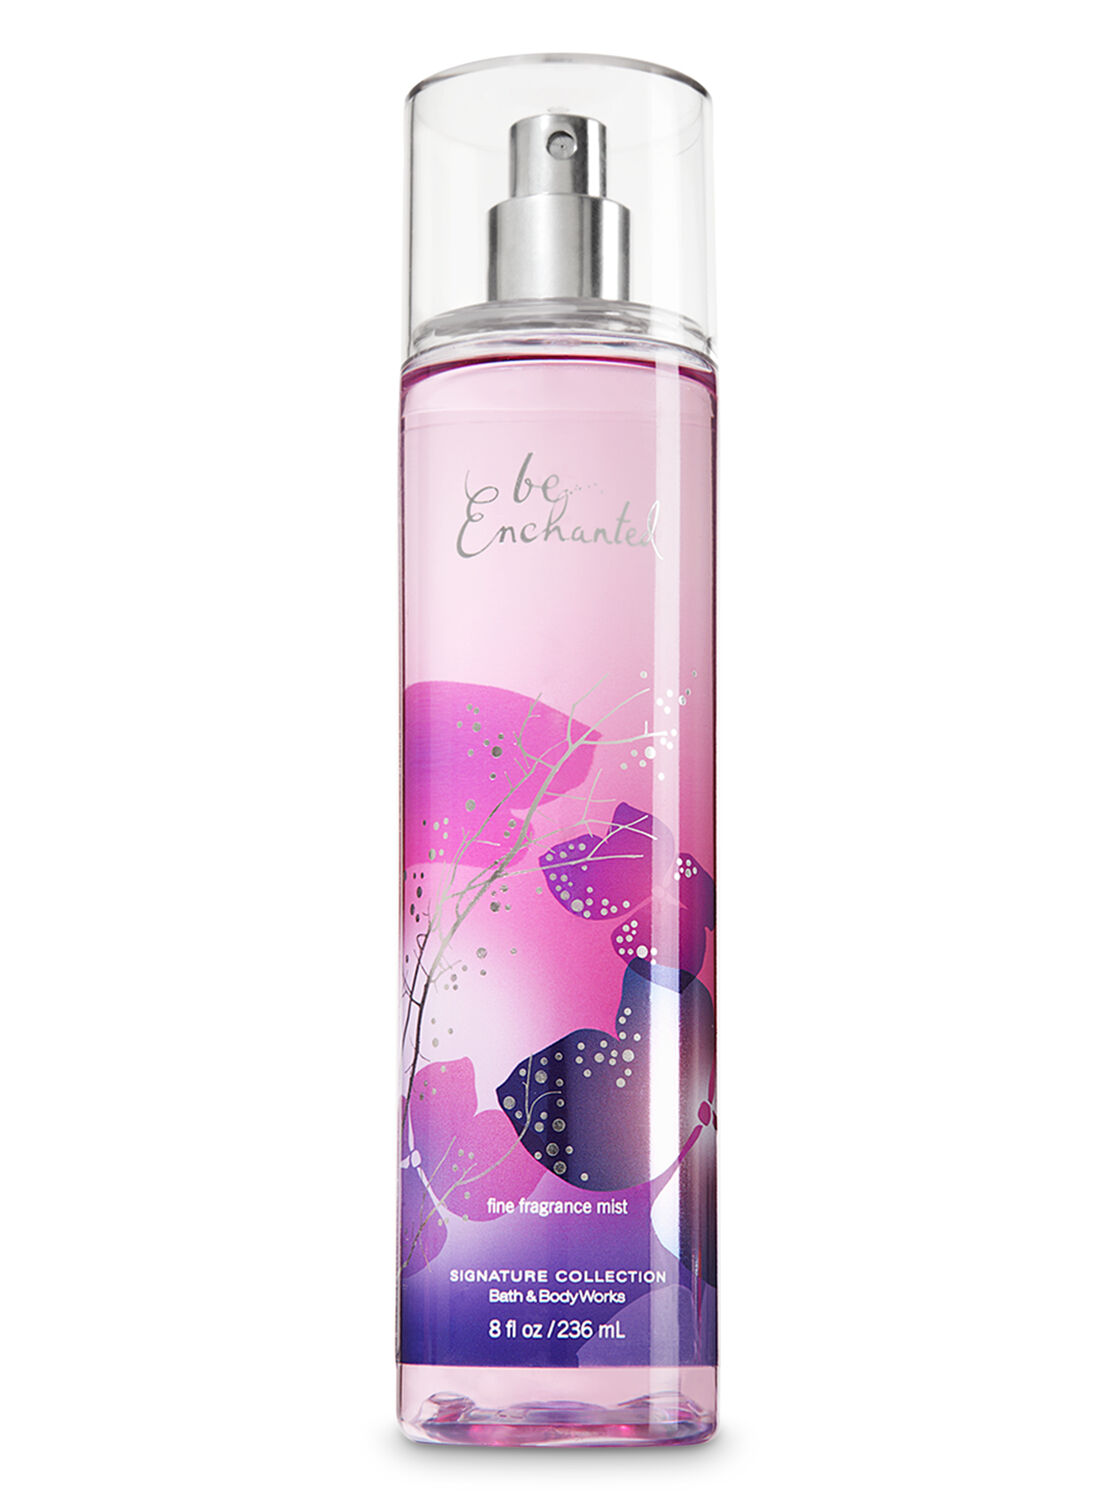 Be Enchanted Fine Fragrance Mist Signature Collection Bath Master Spray Cologne Black Musk Body Works